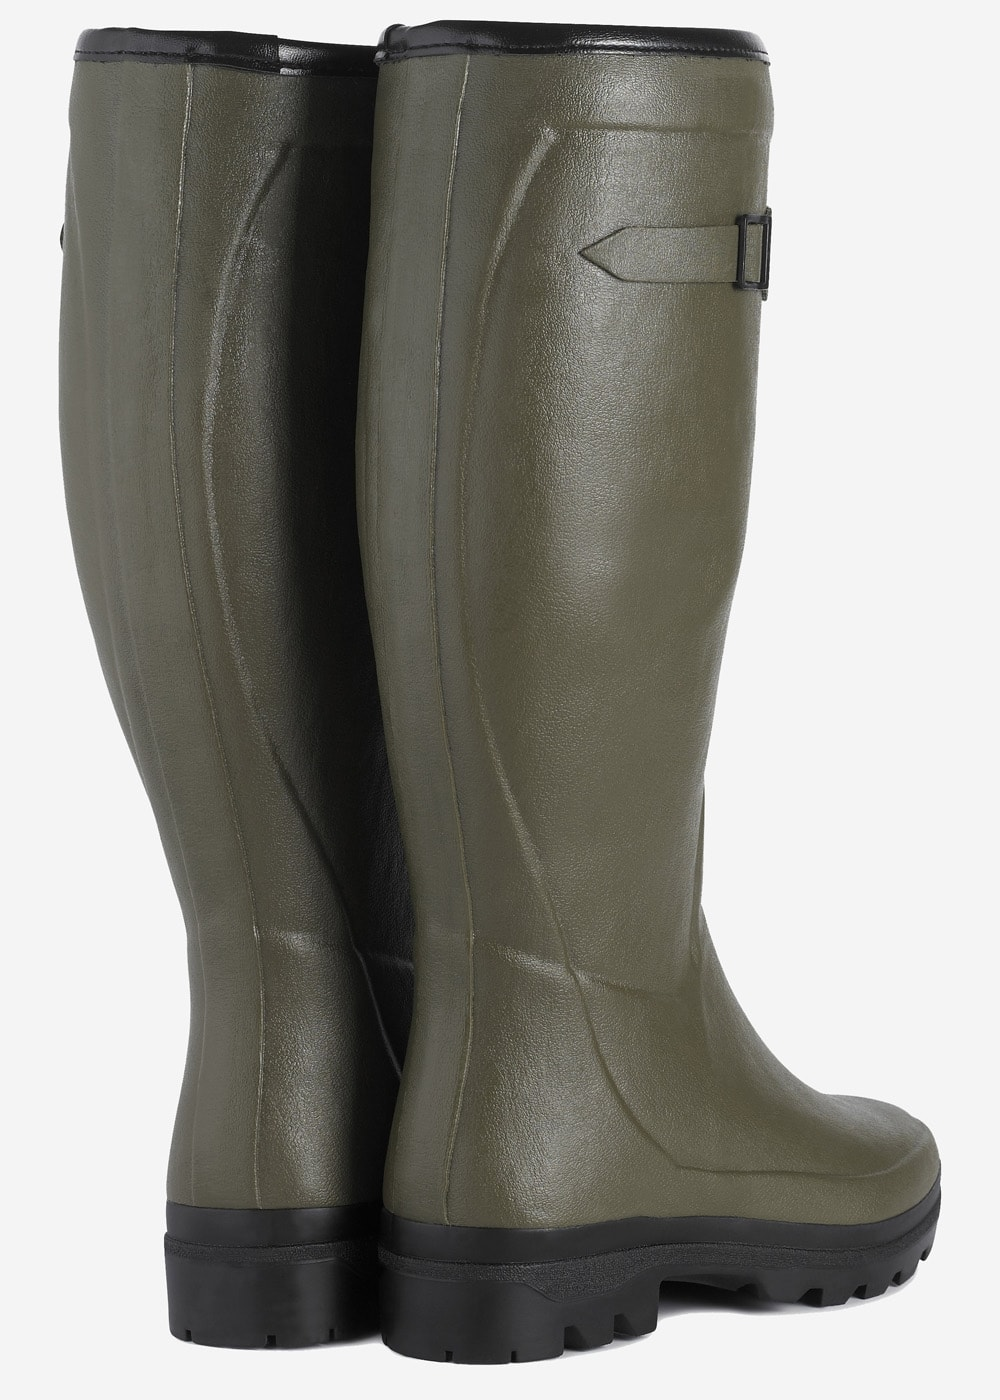 FREE UK DELIVERY Le Chameau Country Lady Fouree Wellies